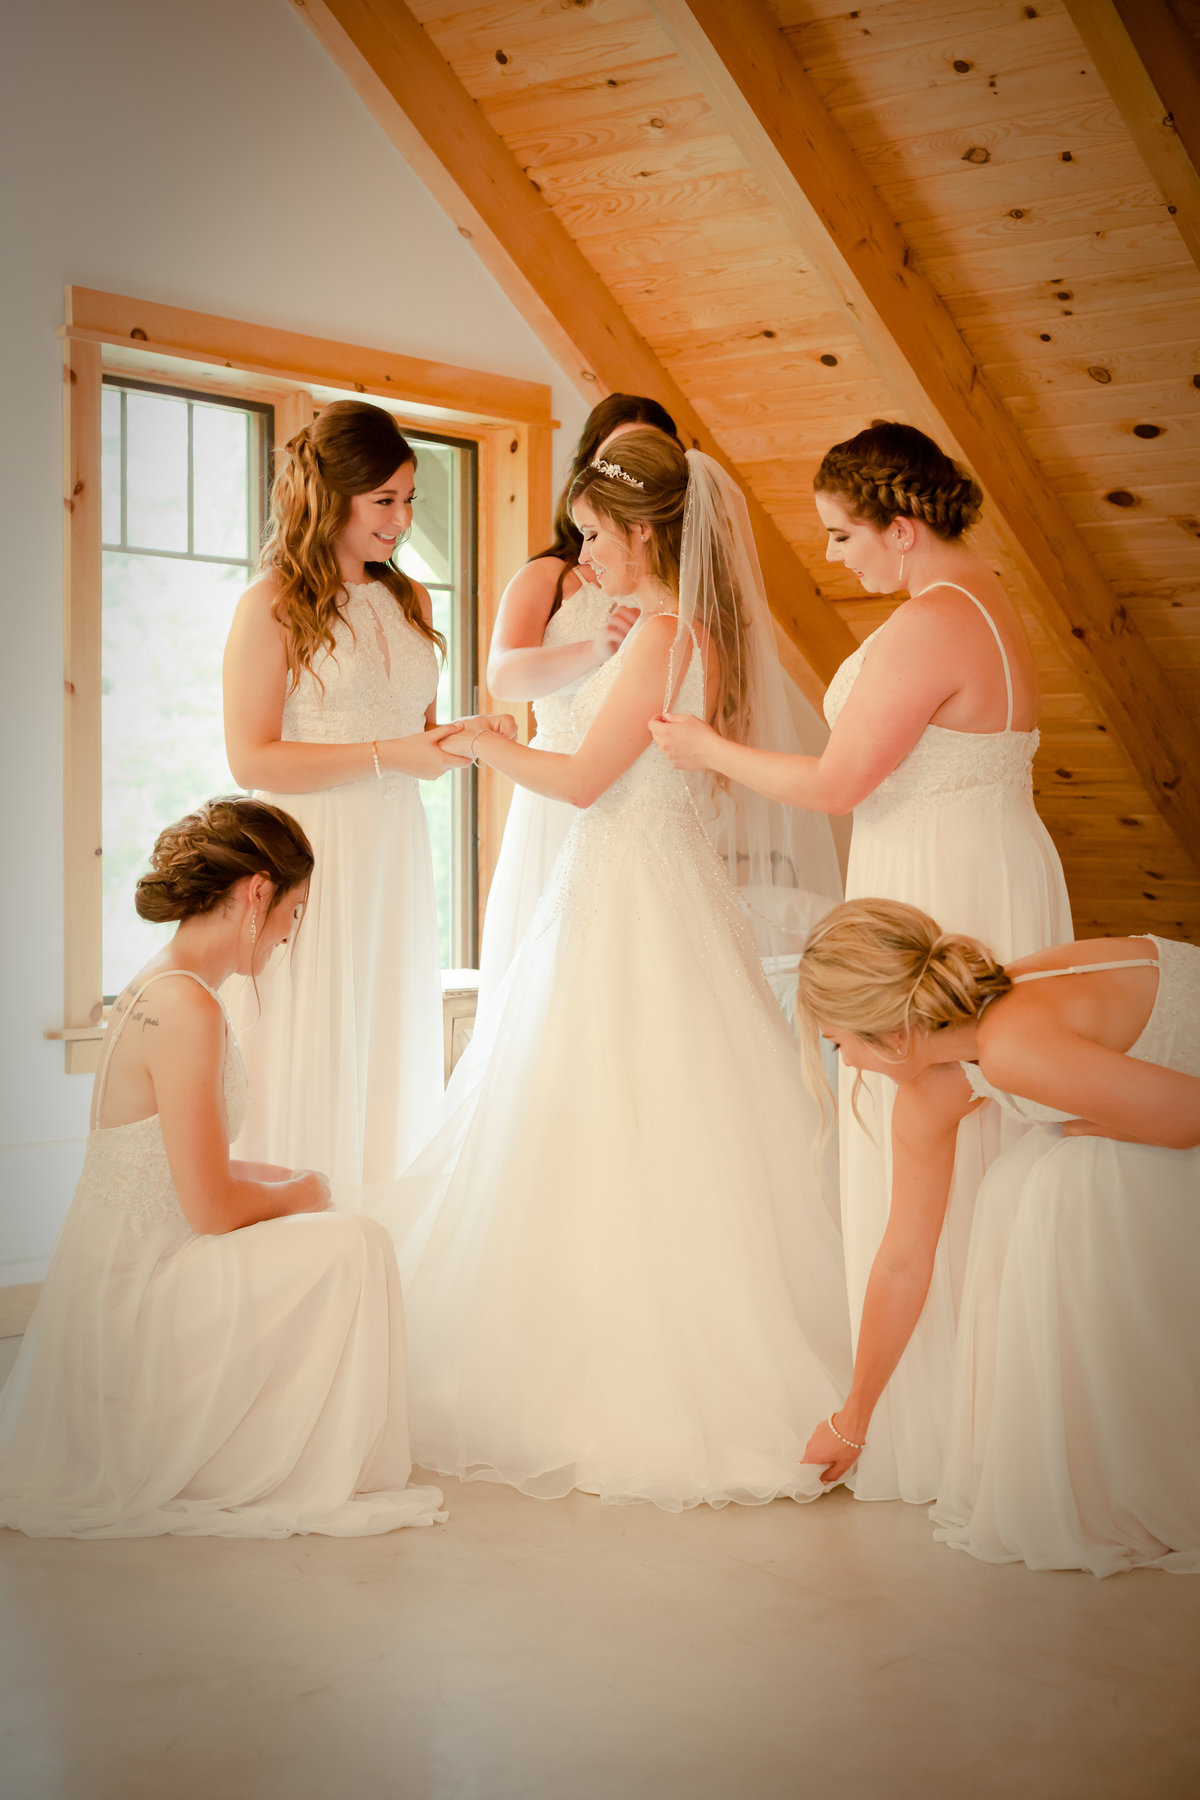 Bride and Bridesmaids Photos (2)